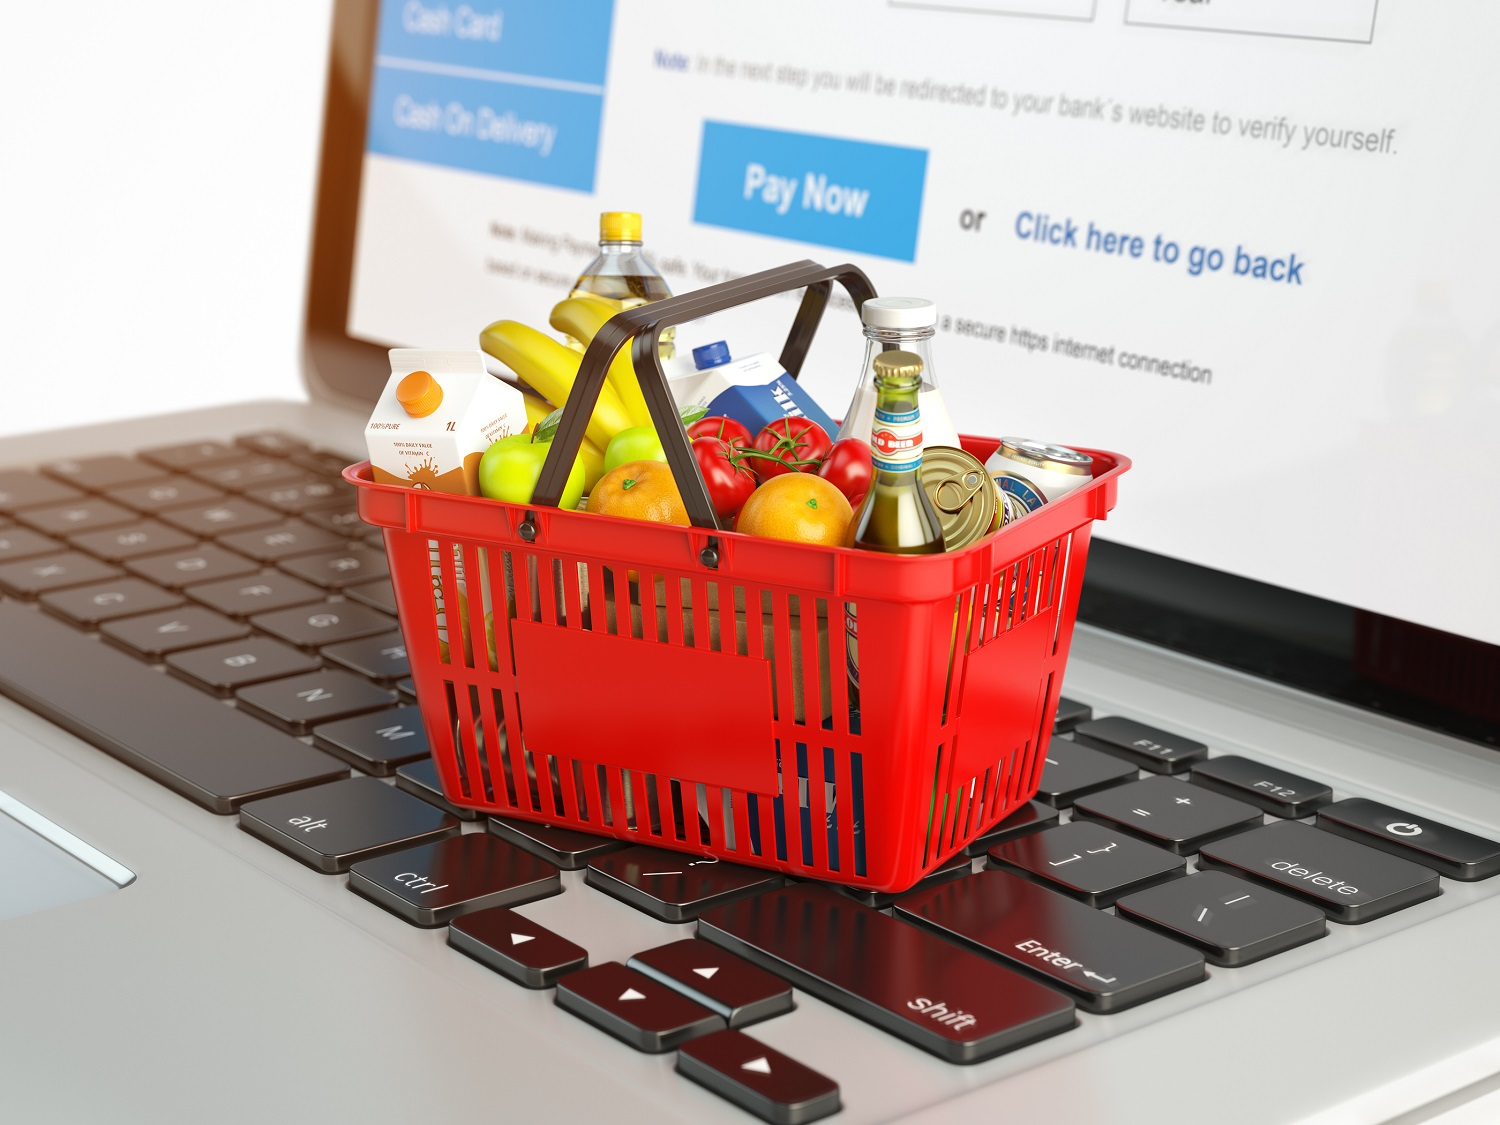 shopping-basket-with-variety-of-grocery-products-ion-laptop-keyb